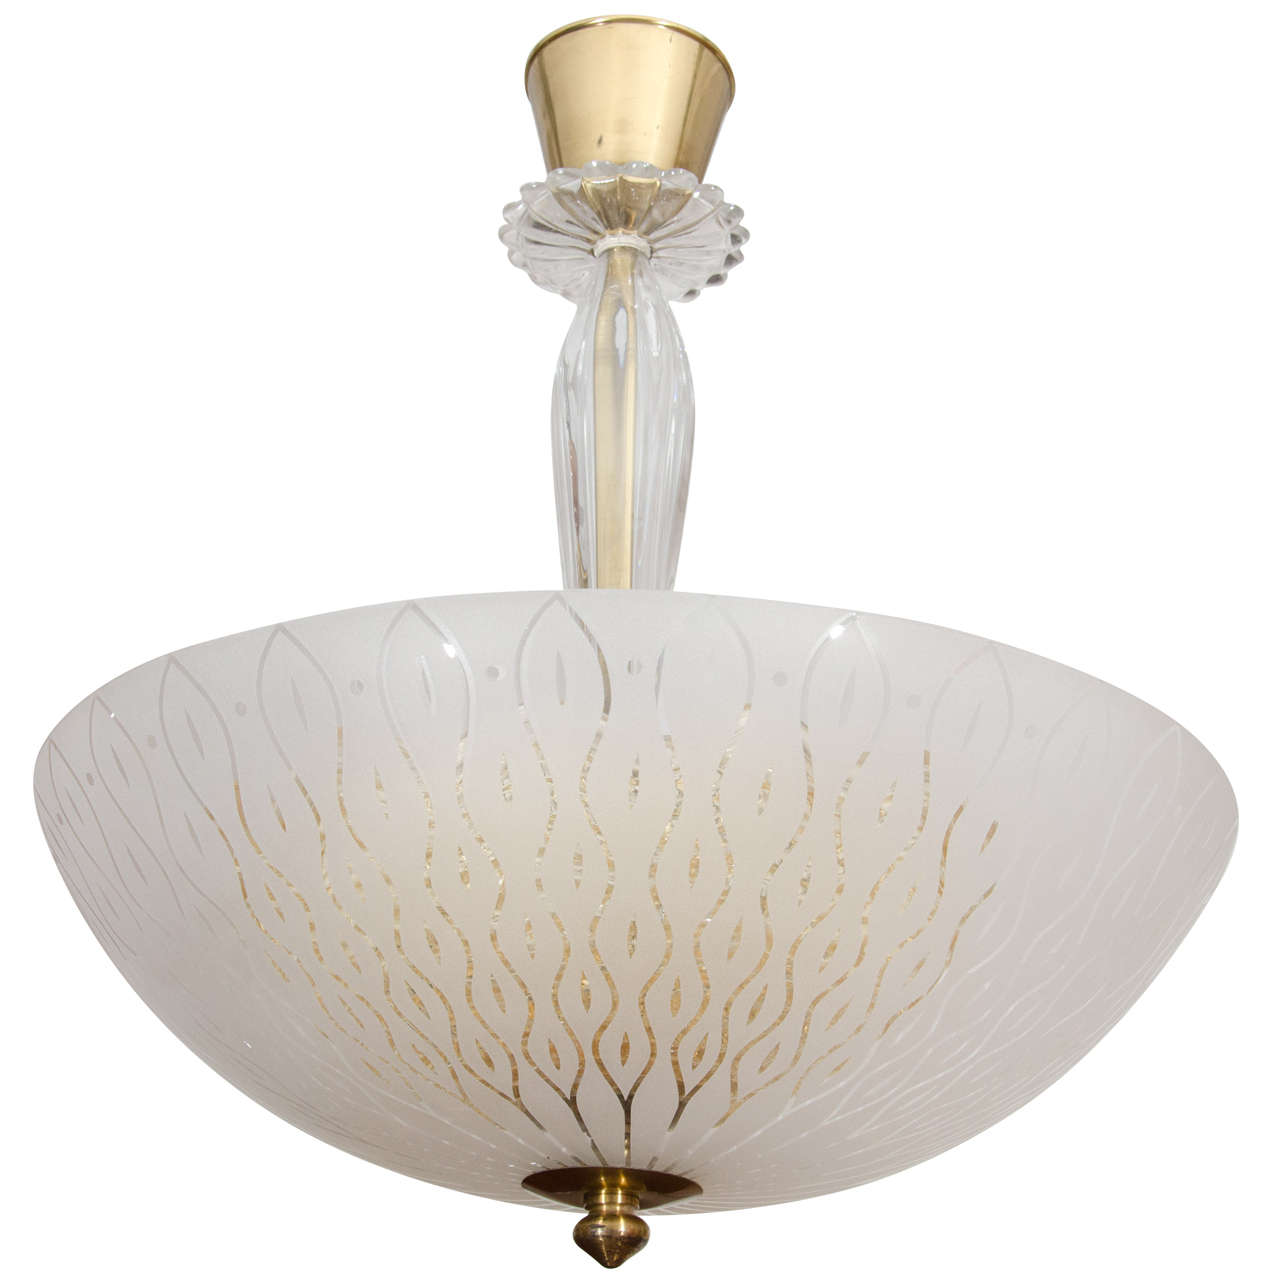 Orrefors Art Glass Light Fixture with Internal Golden Diffuser